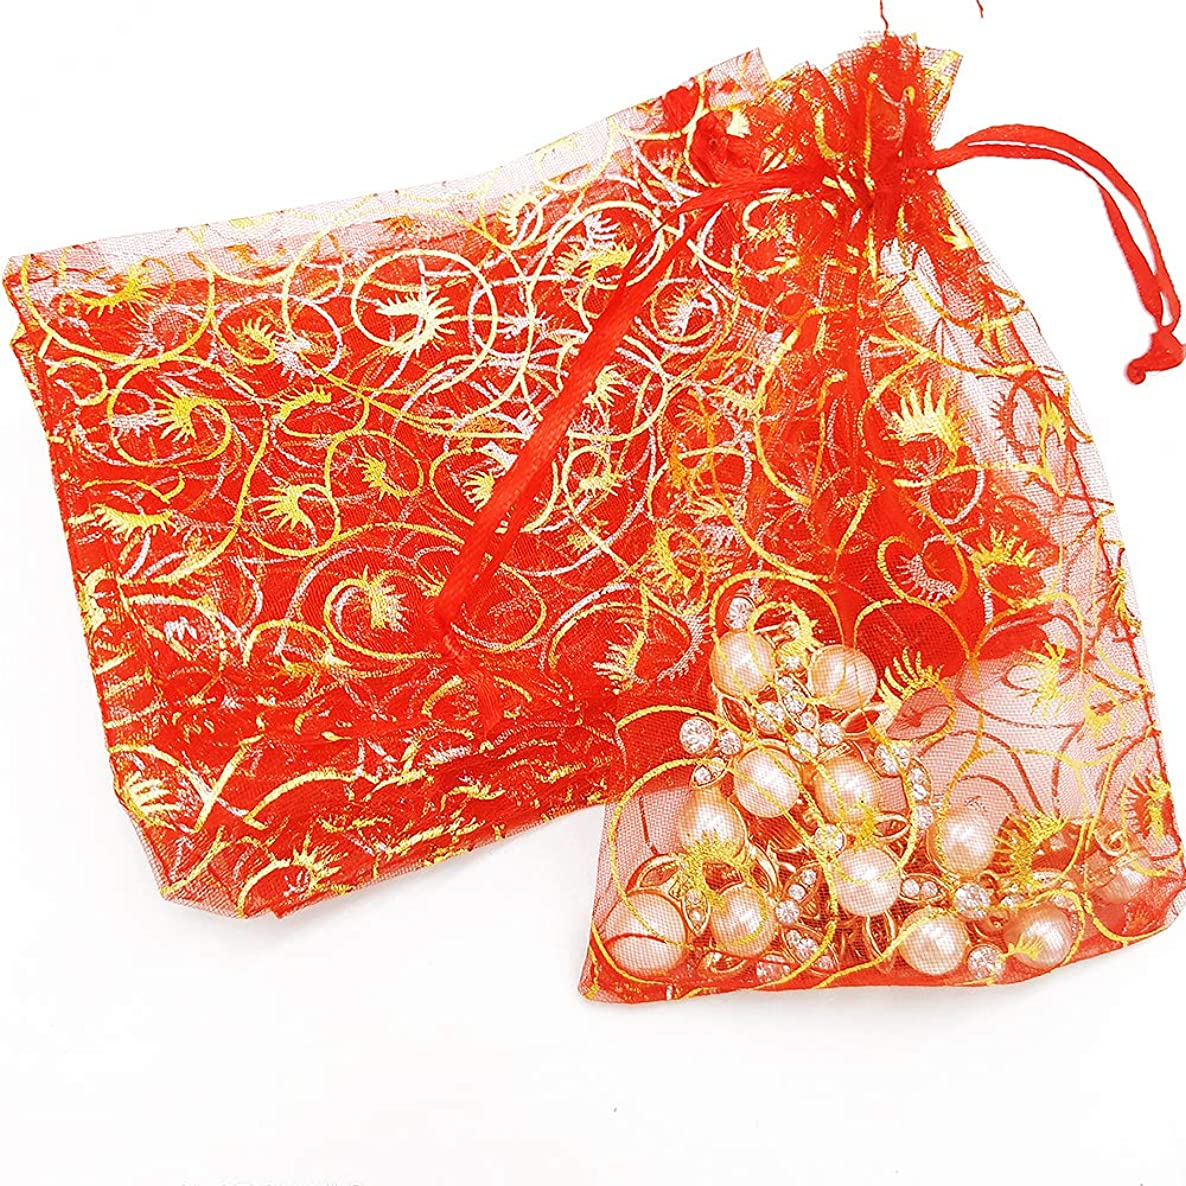 Outdoorfly 50PCS Organza Bags 4x6 Inches Drawstring Gift Bags Jewelry Pouches Drawstring Bags Candy Chocolate Wedding Party Christmas Baby Favor Prensent Bags(Red Eyelash)